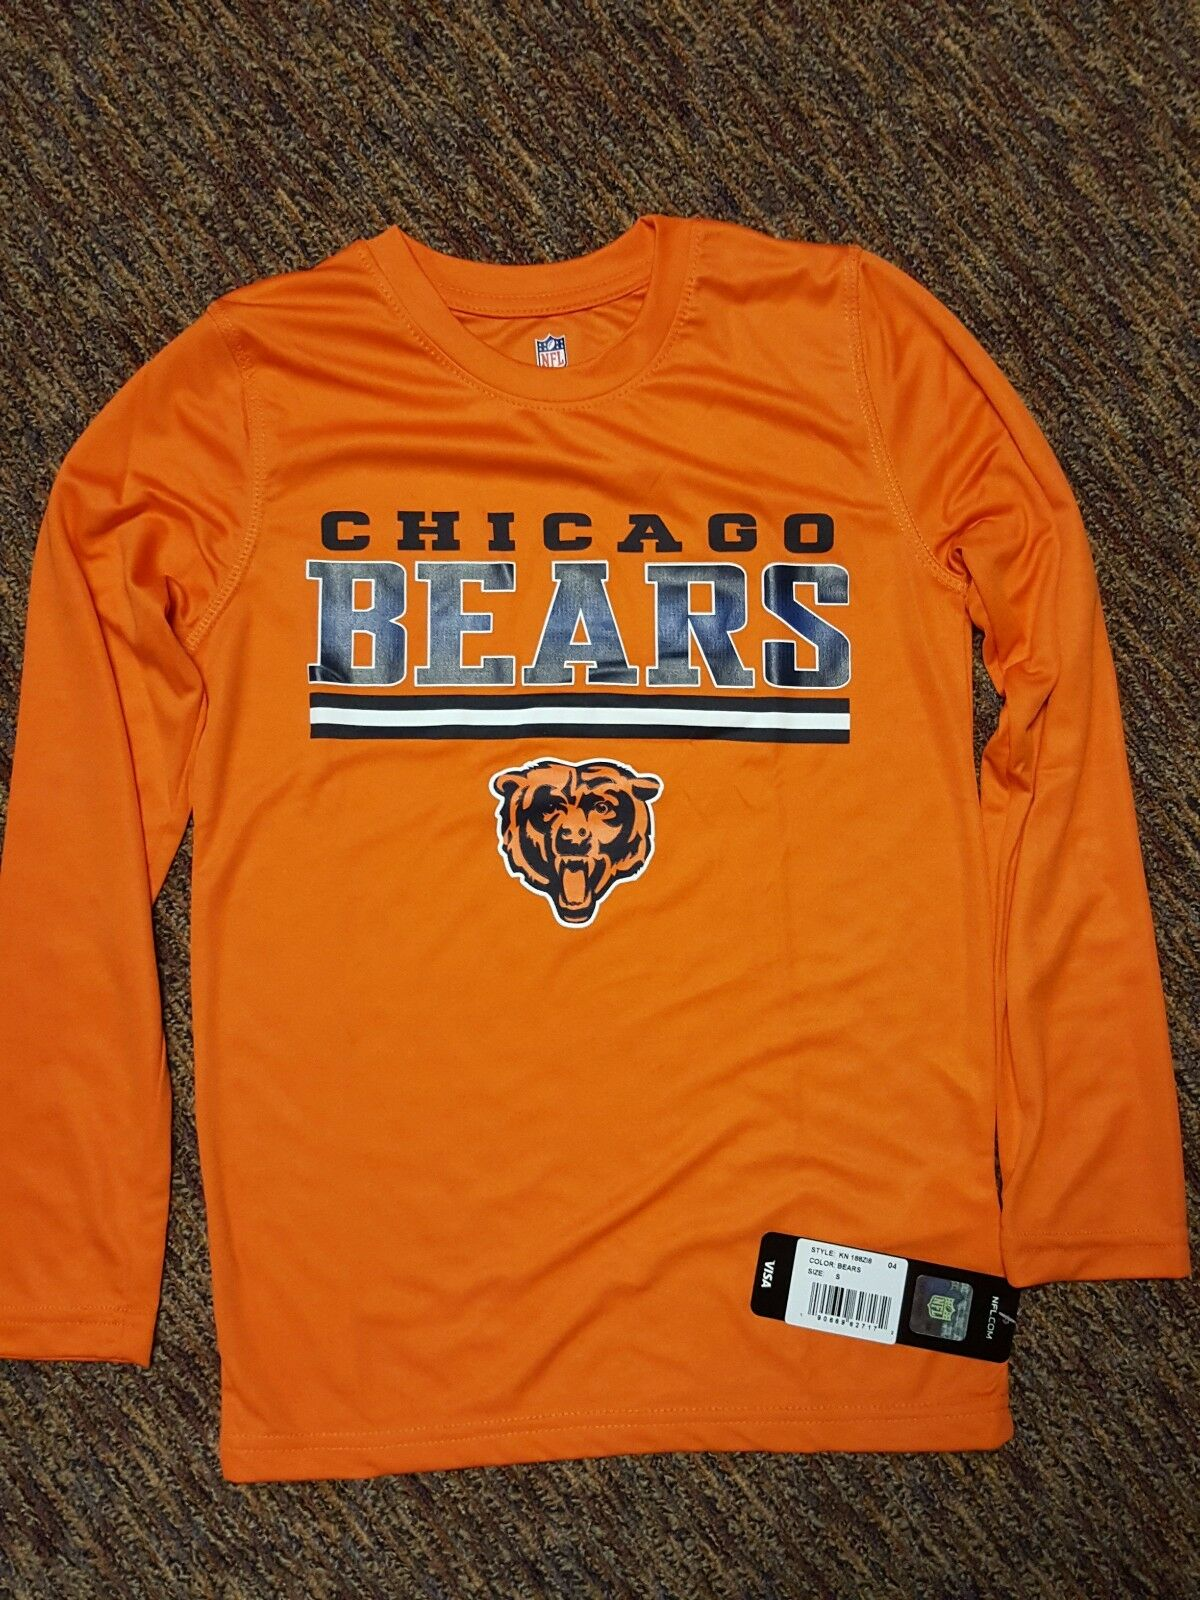 17ff3b69 NFL Chicago Bears Long Sleeve Performance T-shirt Orange Small 8 S Boys  Youth